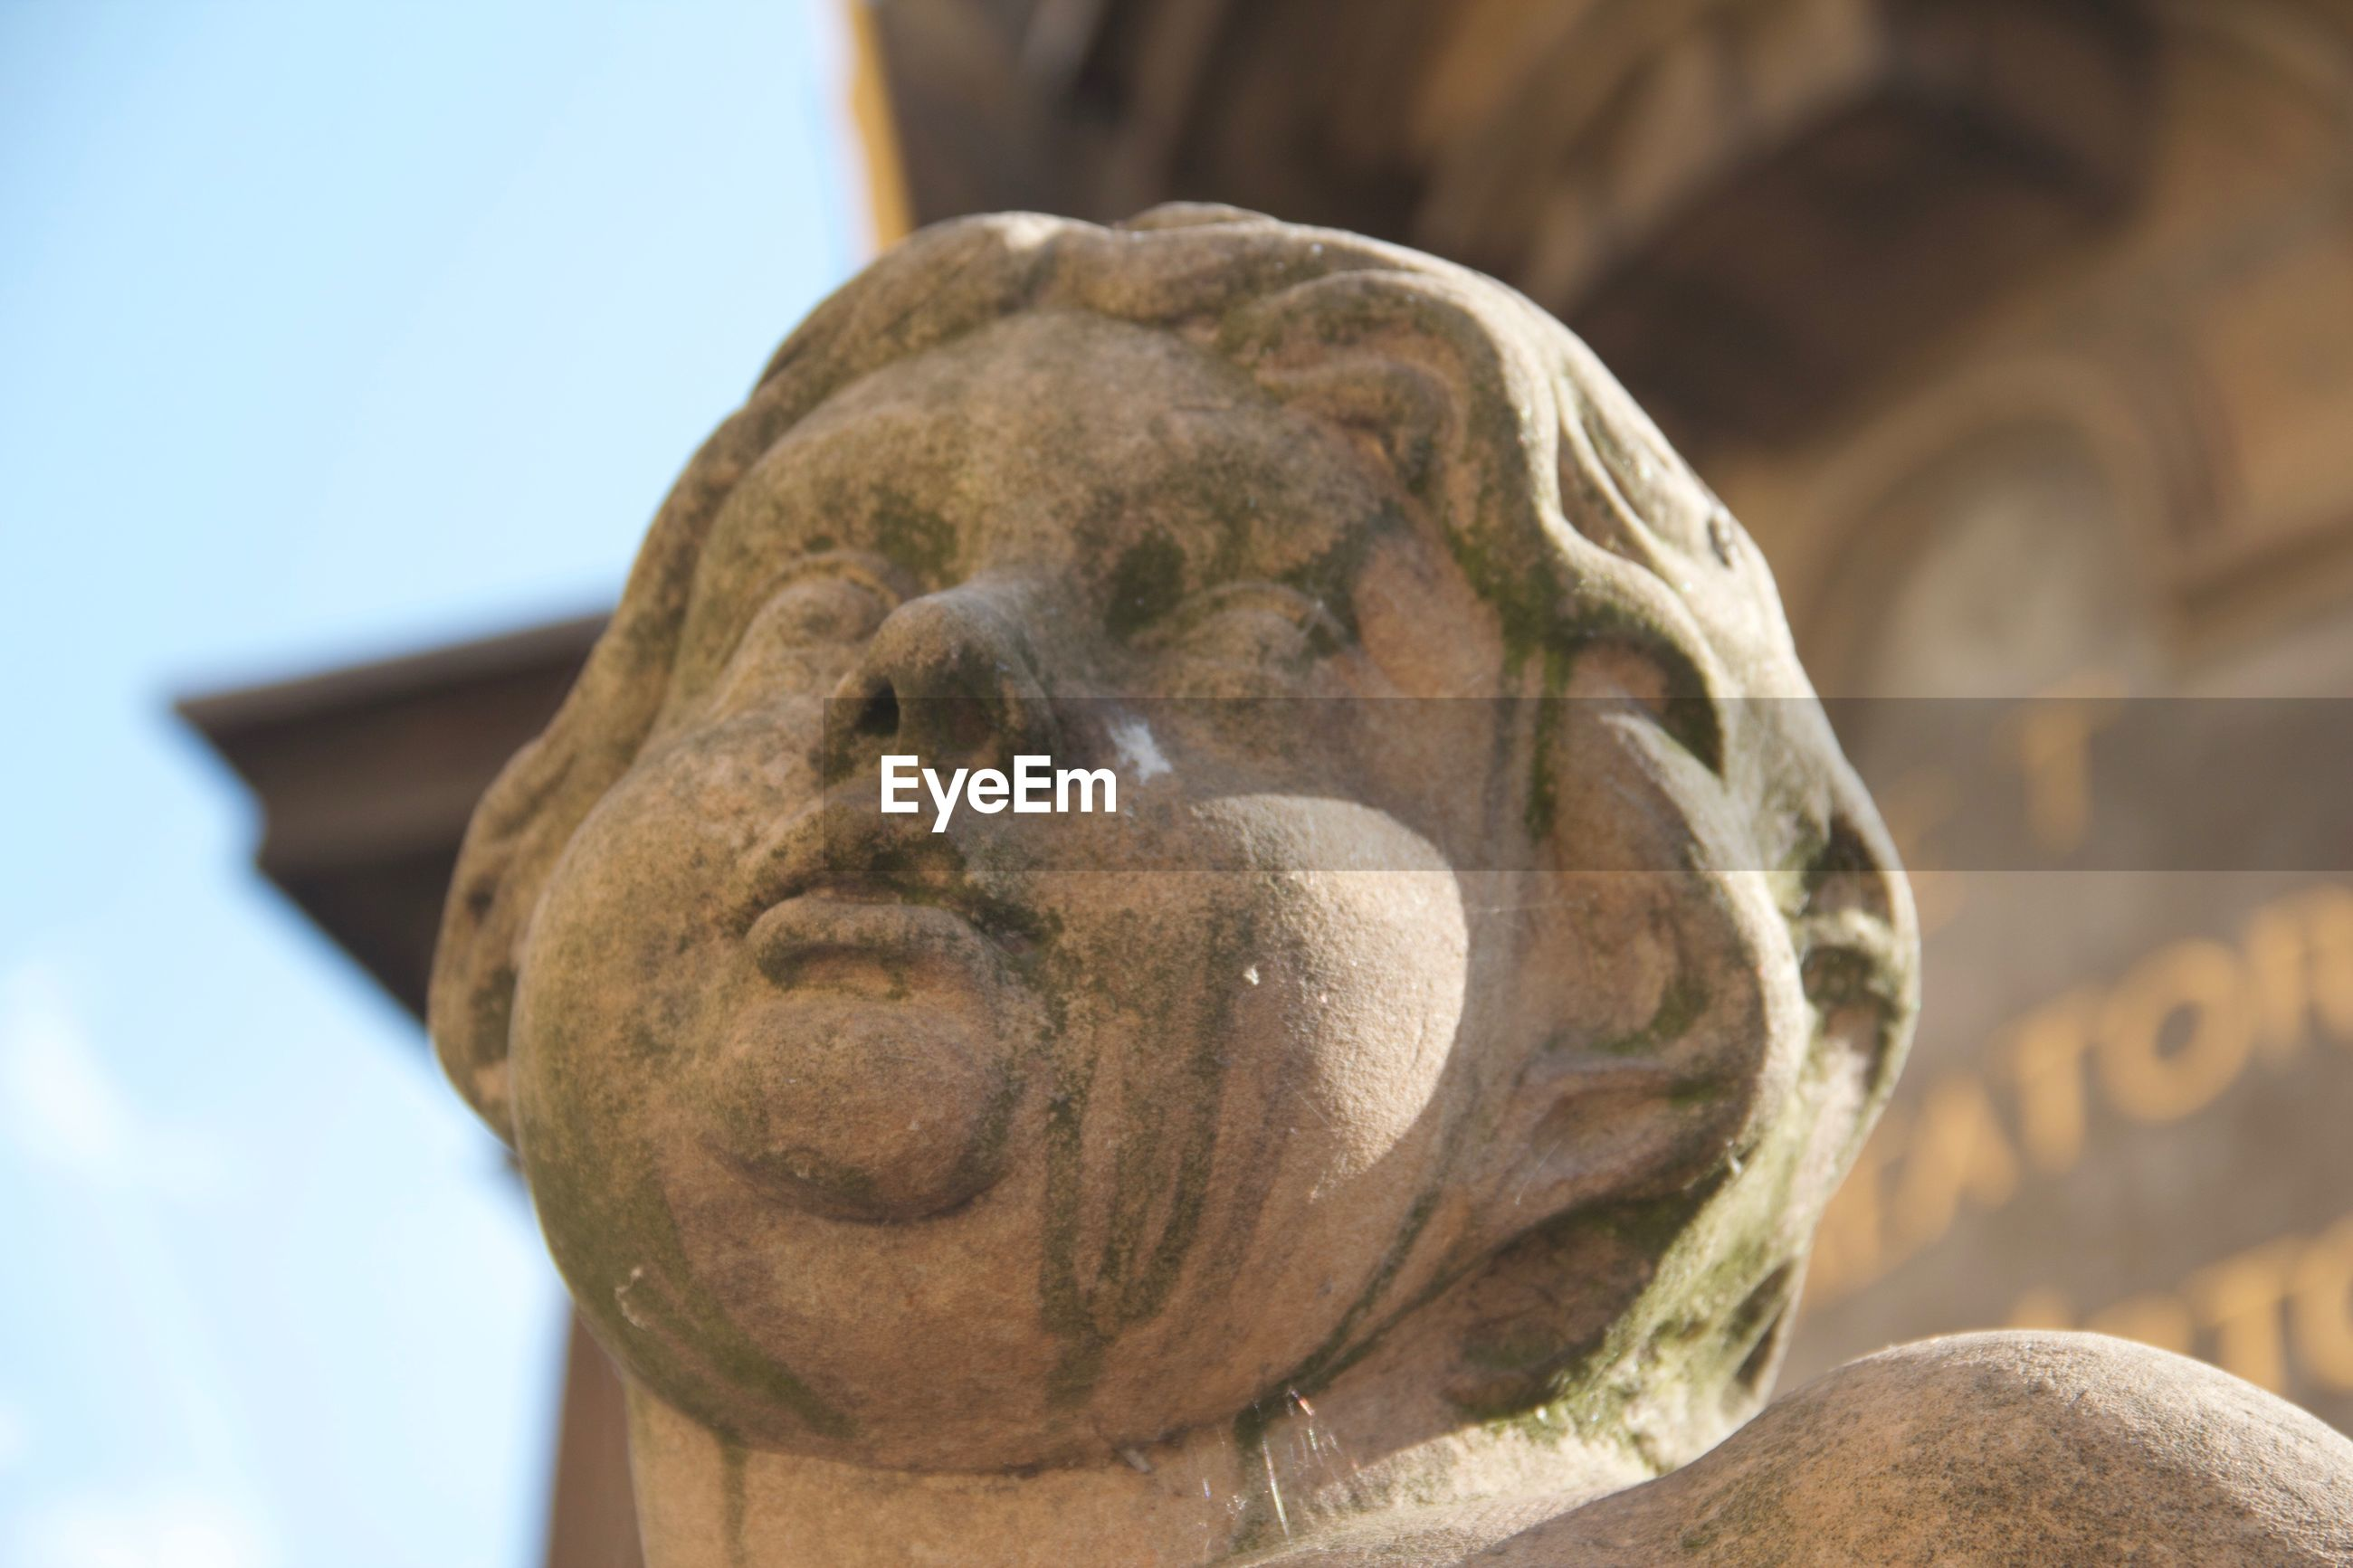 LOW ANGLE VIEW OF STATUE AGAINST BLURRED BACKGROUND